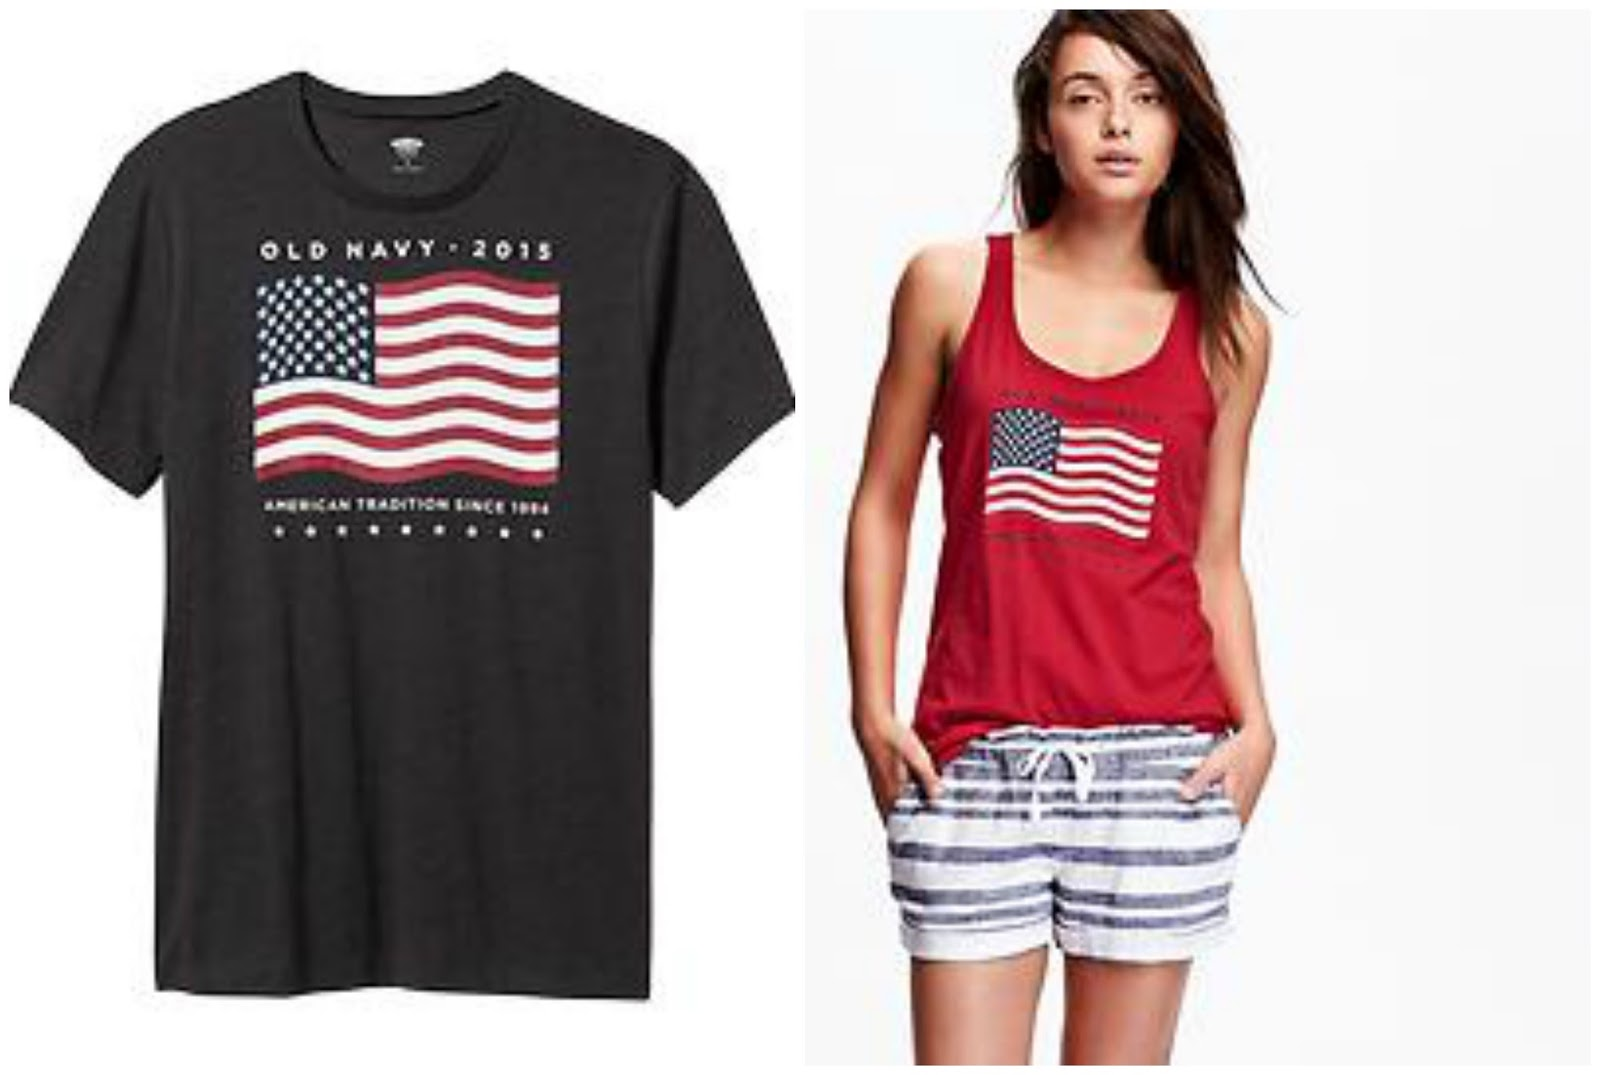 Black t shirt old navy - I Got Old Navy Flag Shirts This Year Not Necessarily To Wear For 4th Of July But Mostly Just For Fun They Remind Me Of Being A Little Kid And Being So